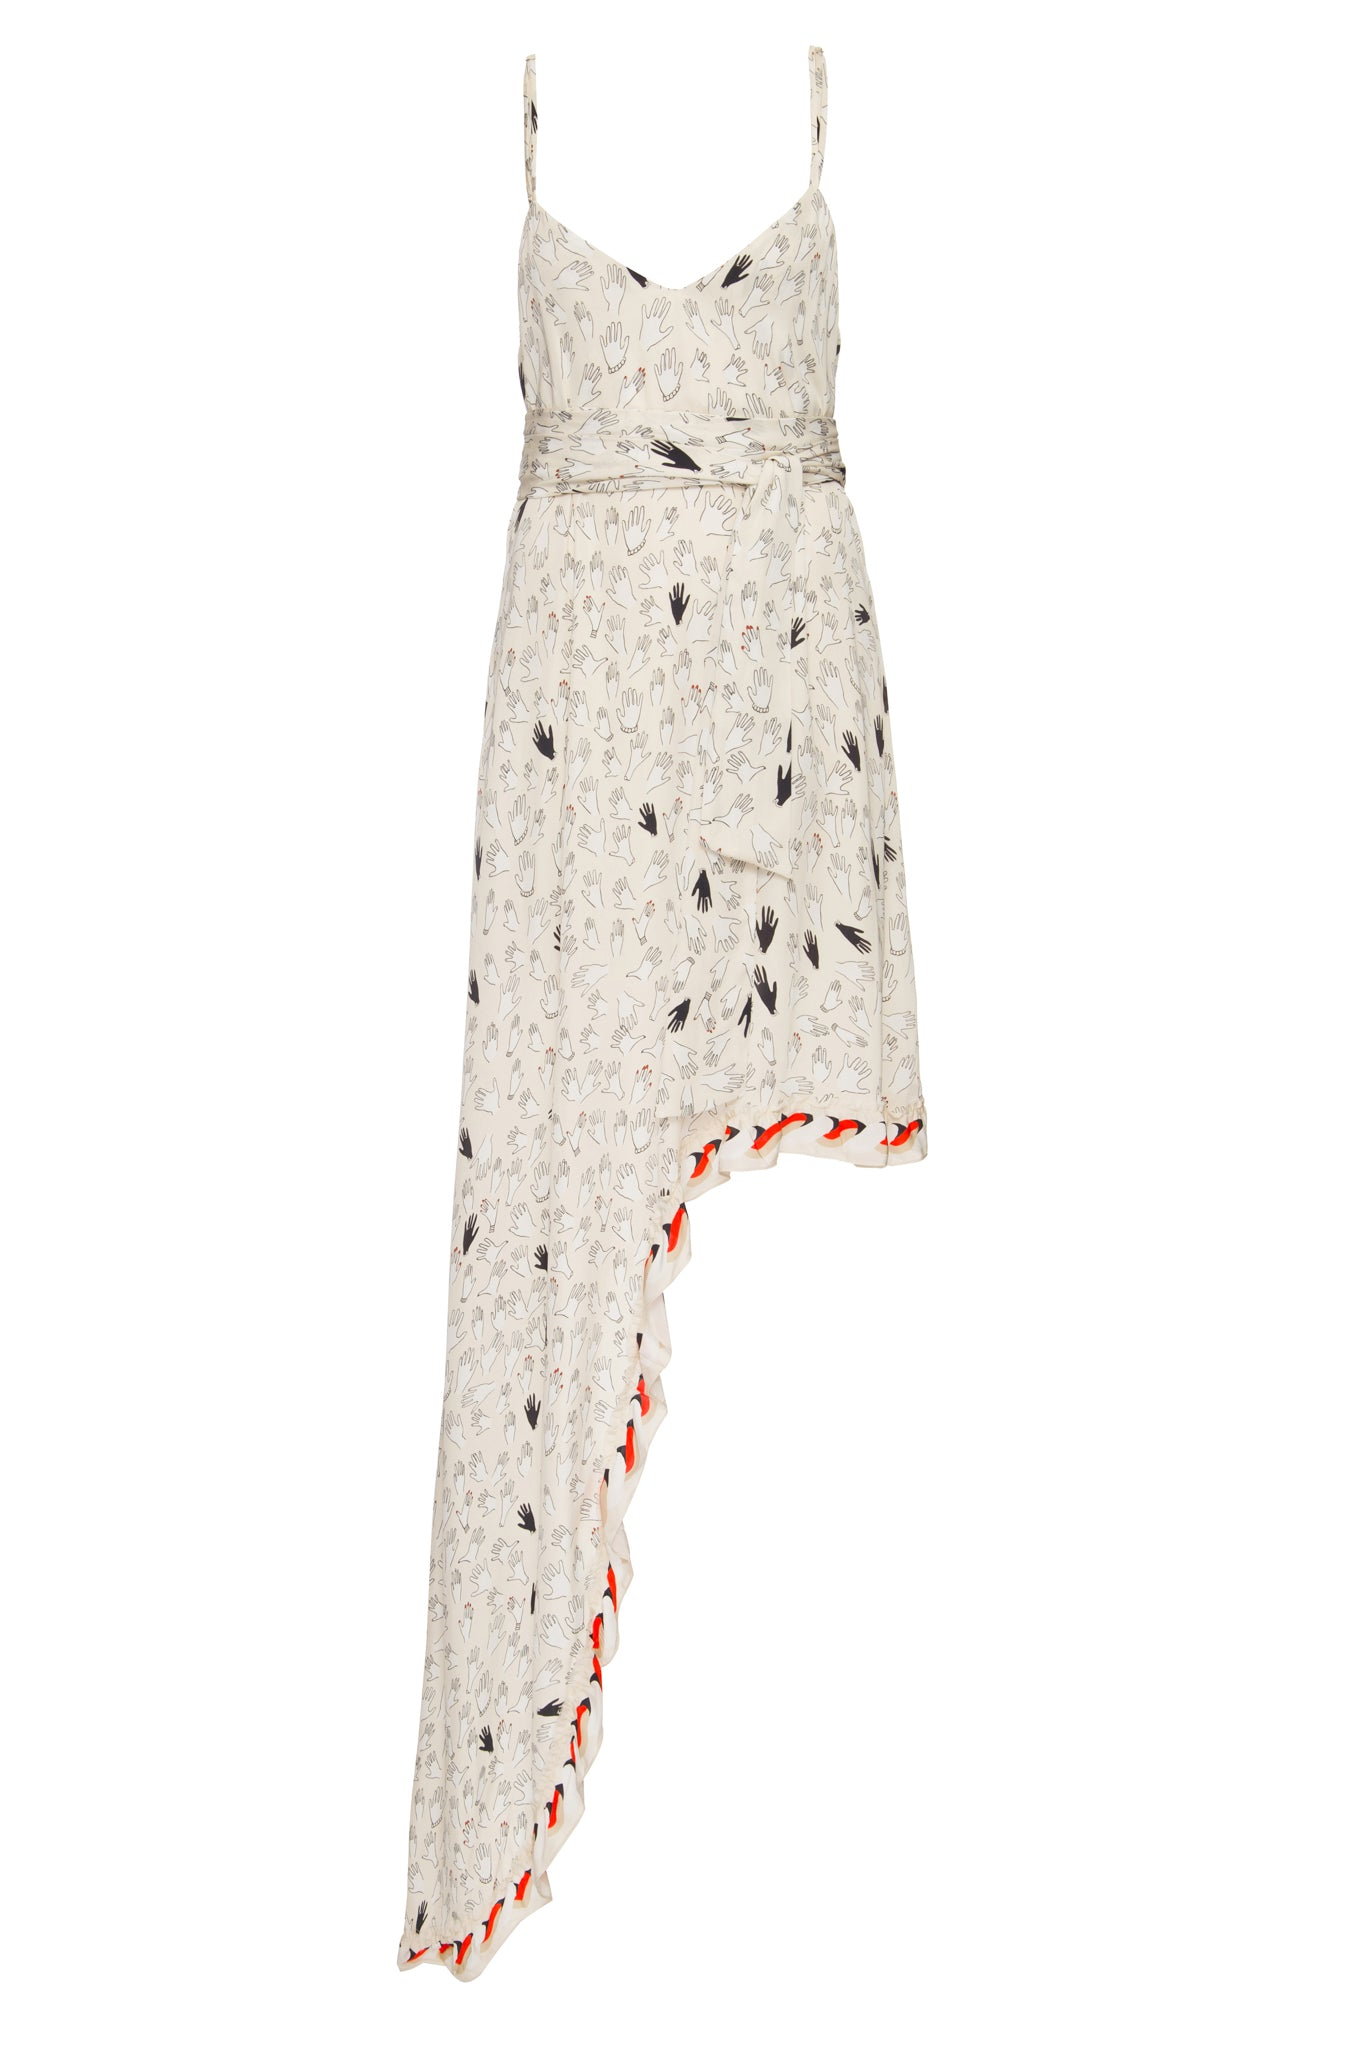 Of White Hands Print Gale Dress